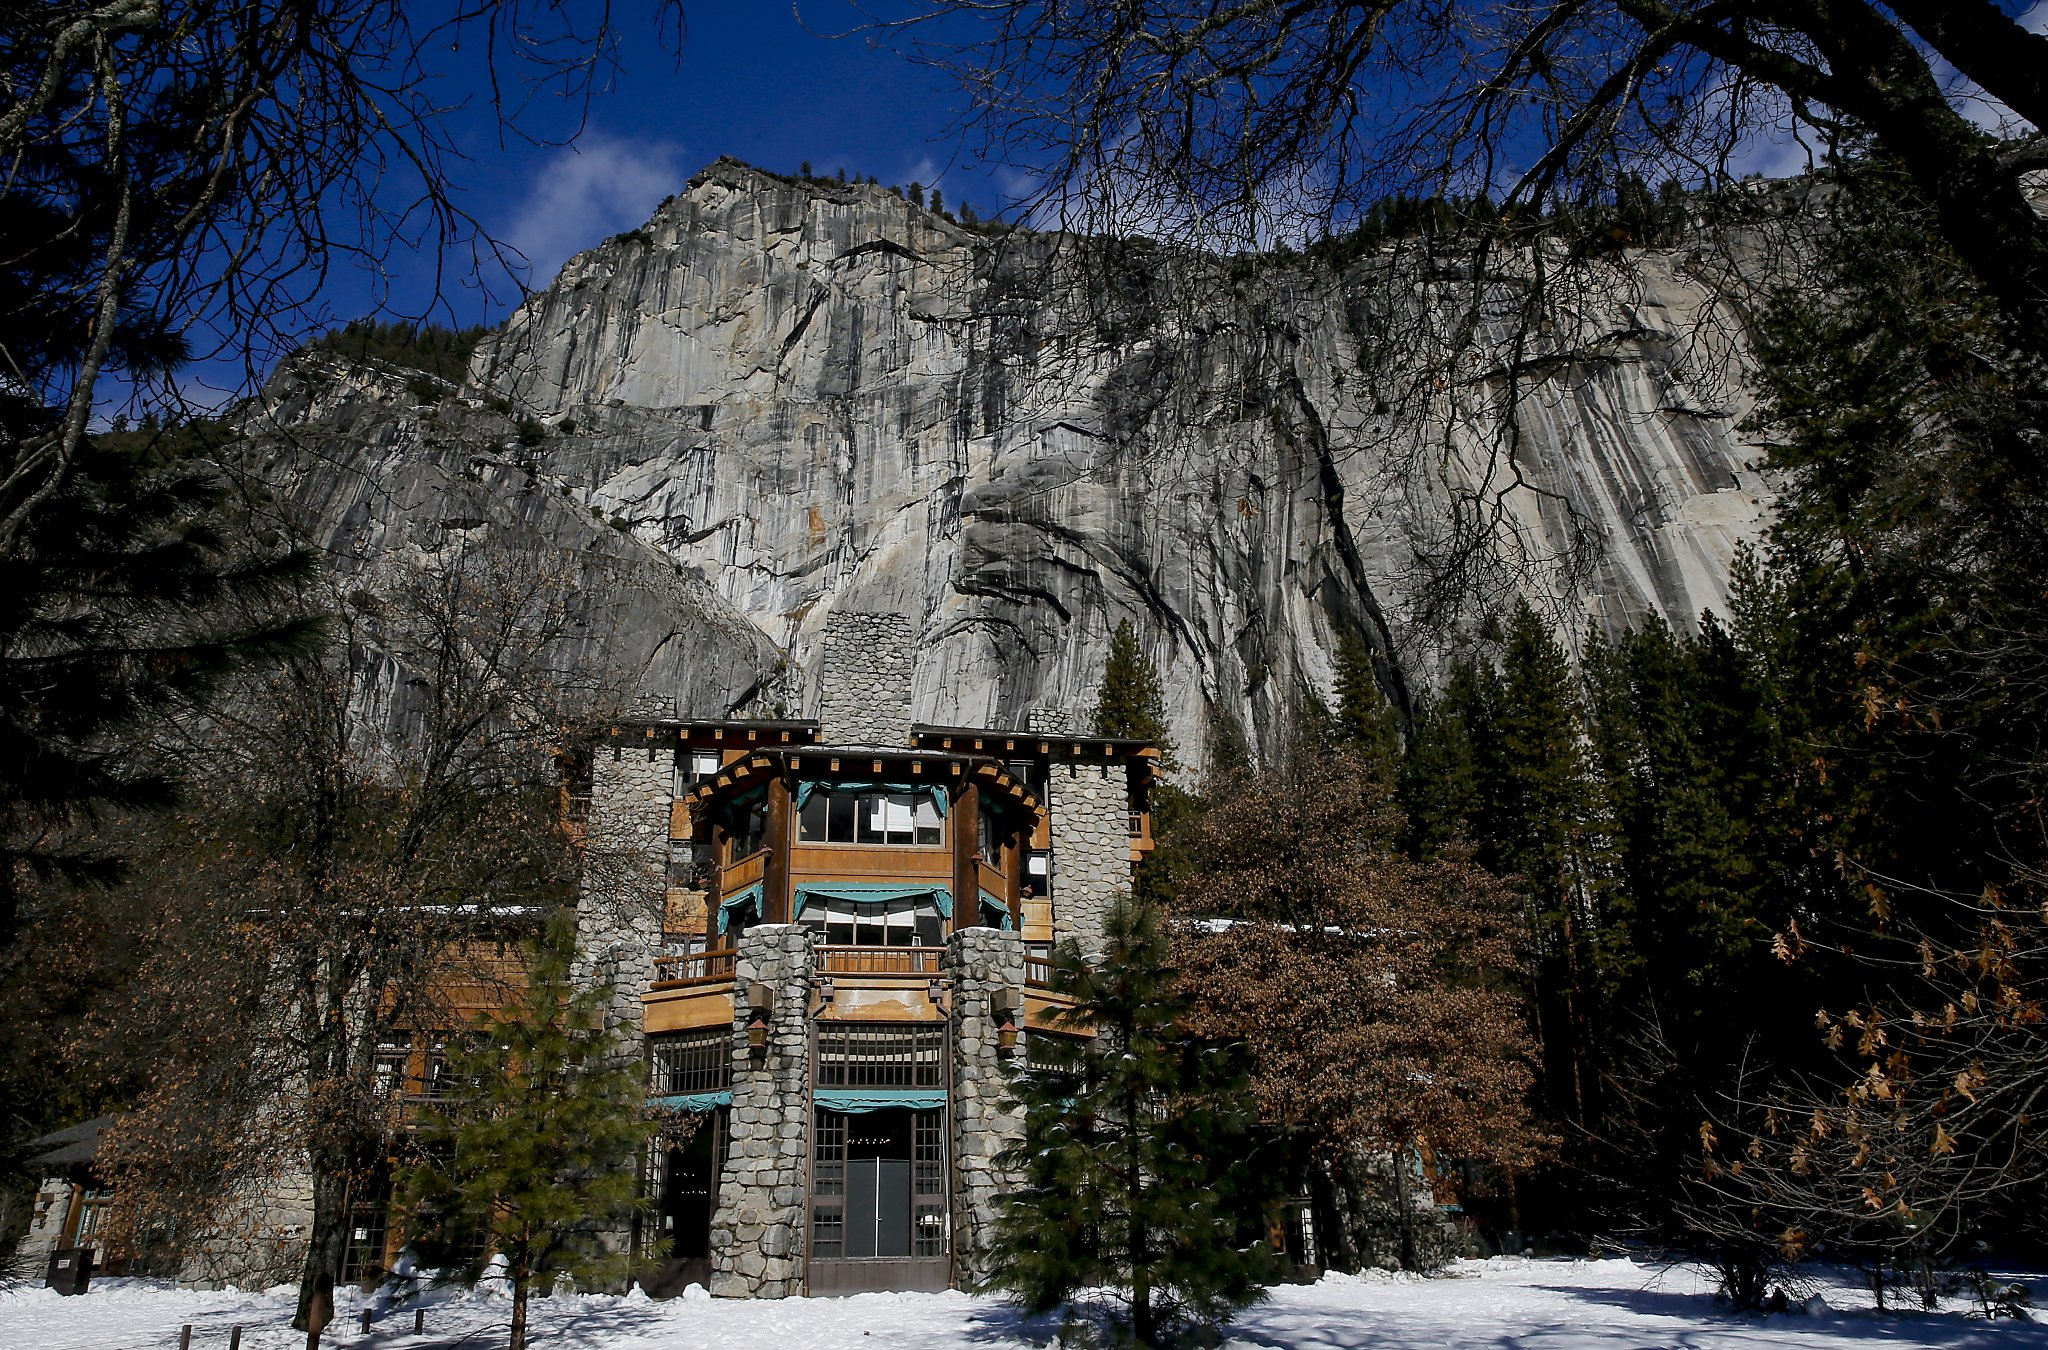 The Ahwahnee In Yosemite National Park Calif On Fri January 15 2016